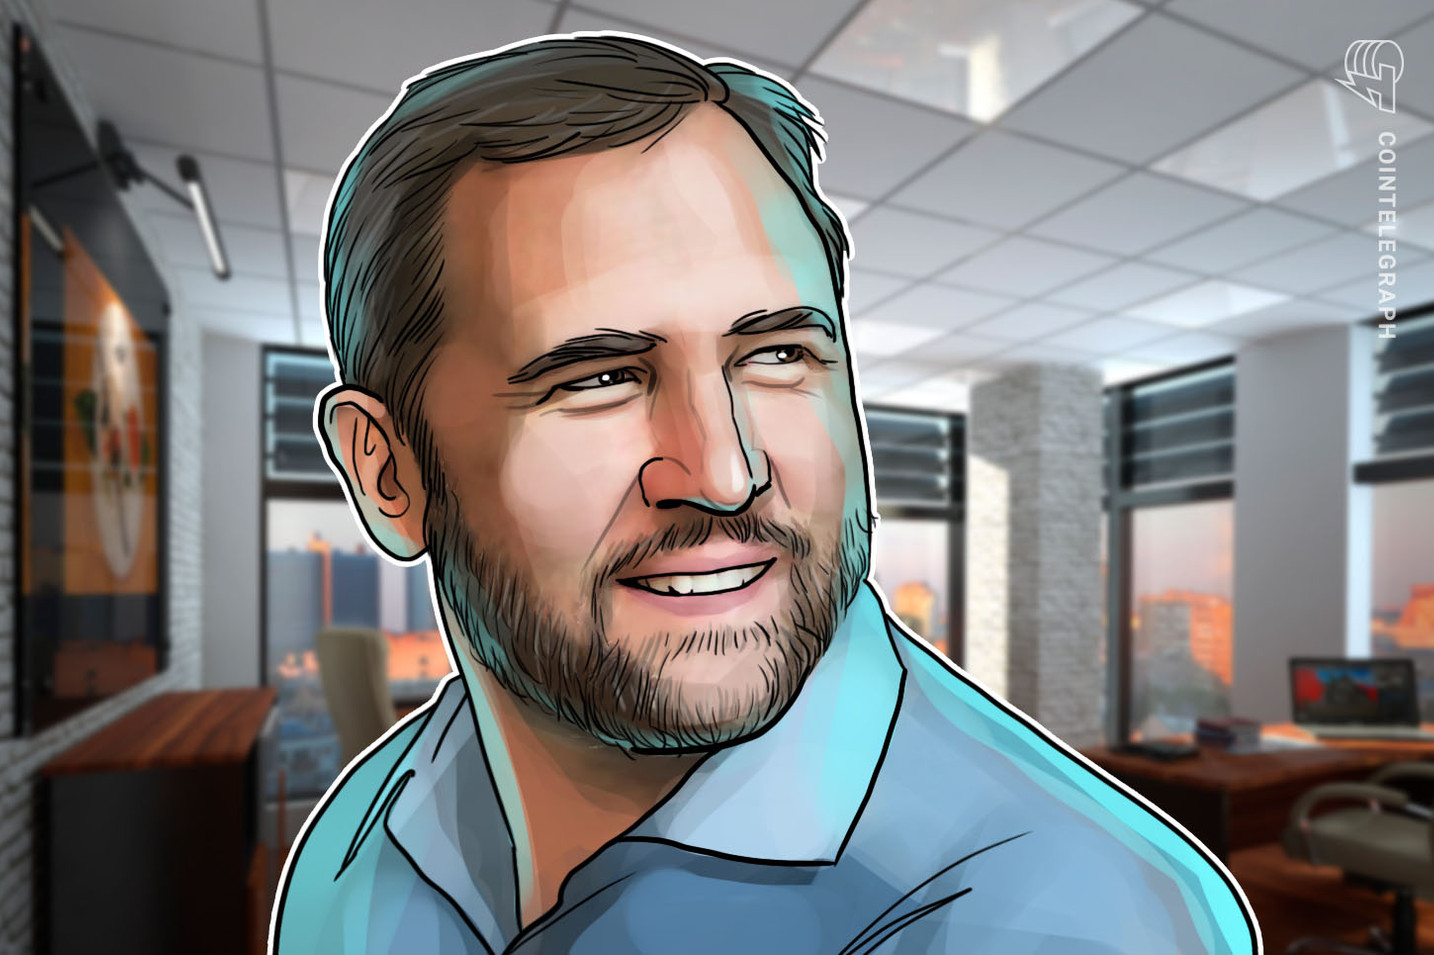 95% of Ripple's customers are not from the US, CEO Garlinghouse says